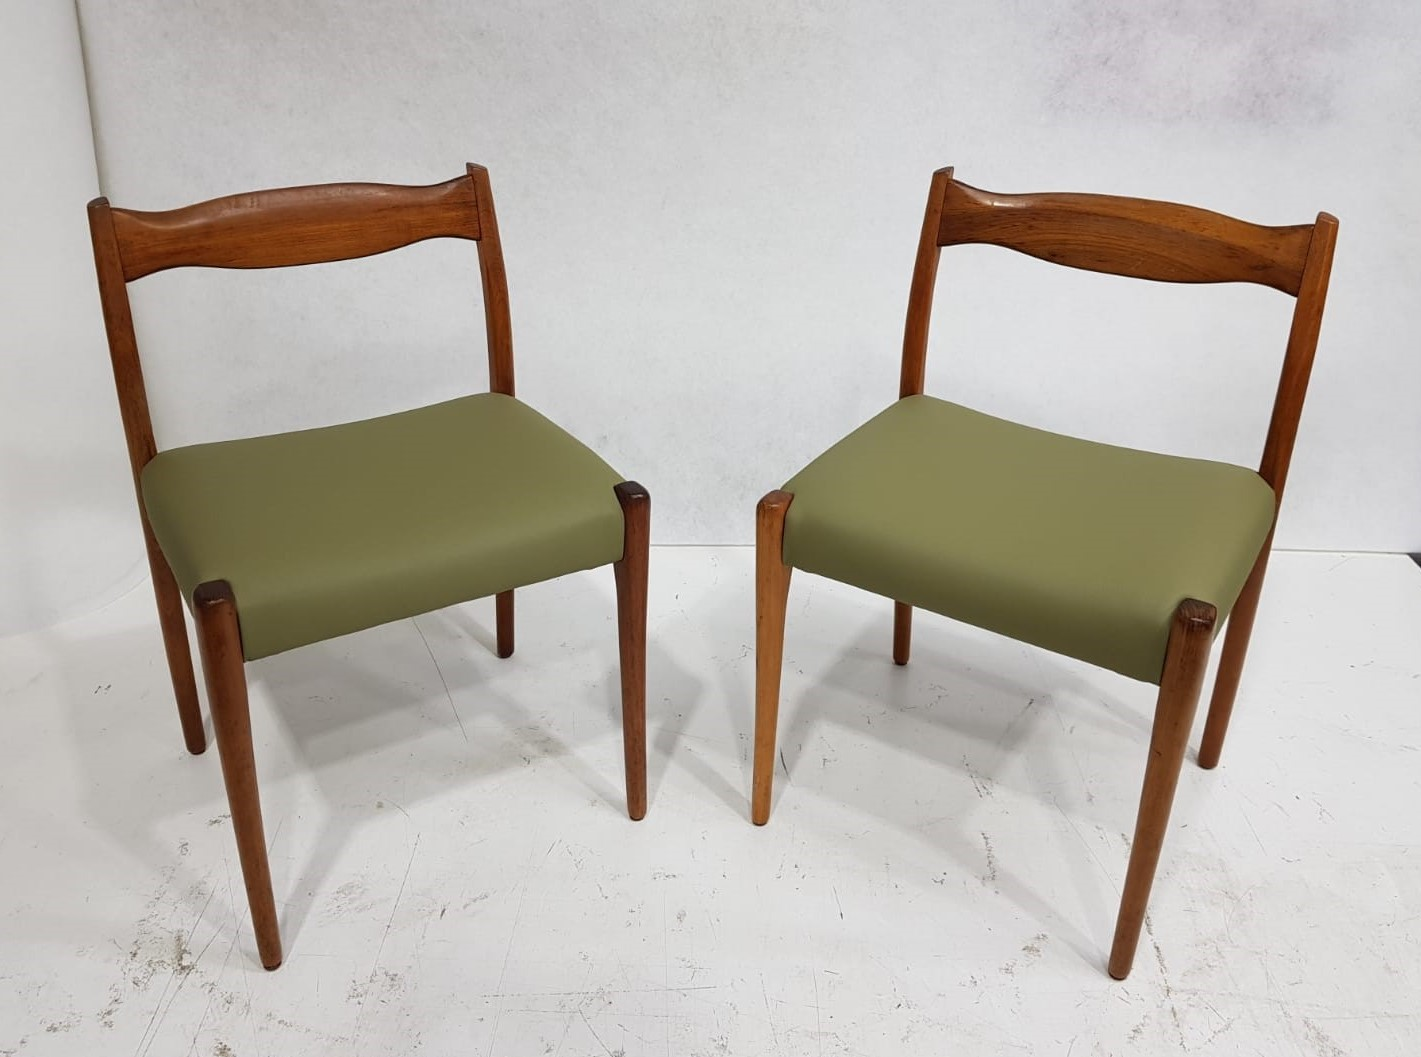 Midcentury green chairs (2)